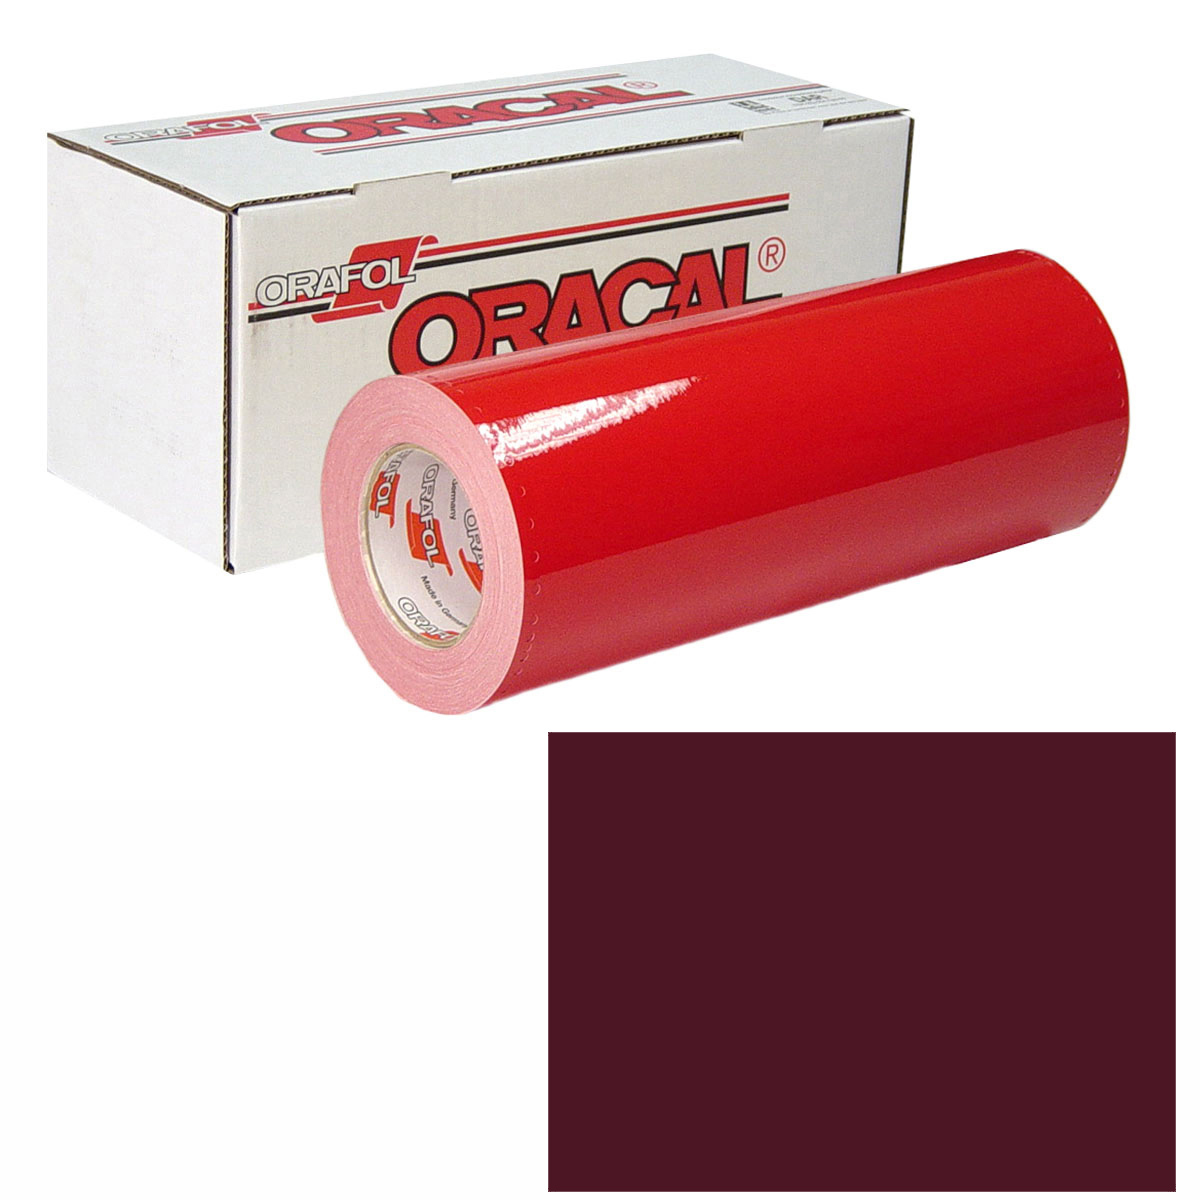 ORACAL 951 Unp 24In X 50Yd 340 Chestnut